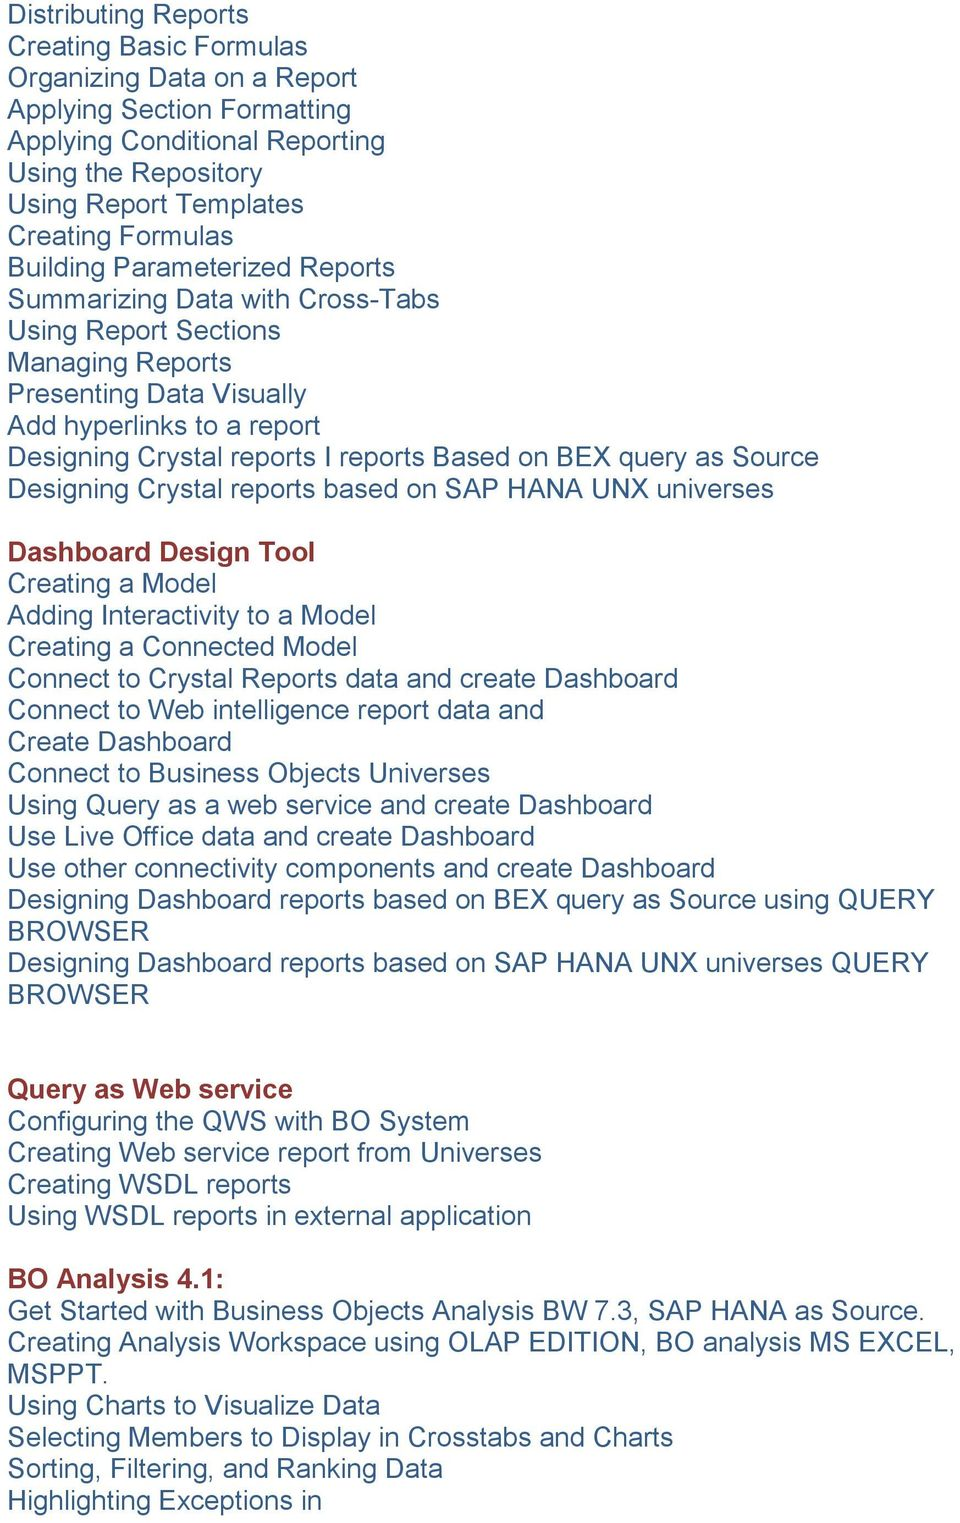 BEX query as Source Designing Crystal reports based on SAP HANA UNX universes Dashboard Design Tool Creating a Model Adding Interactivity to a Model Creating a Connected Model Connect to Crystal